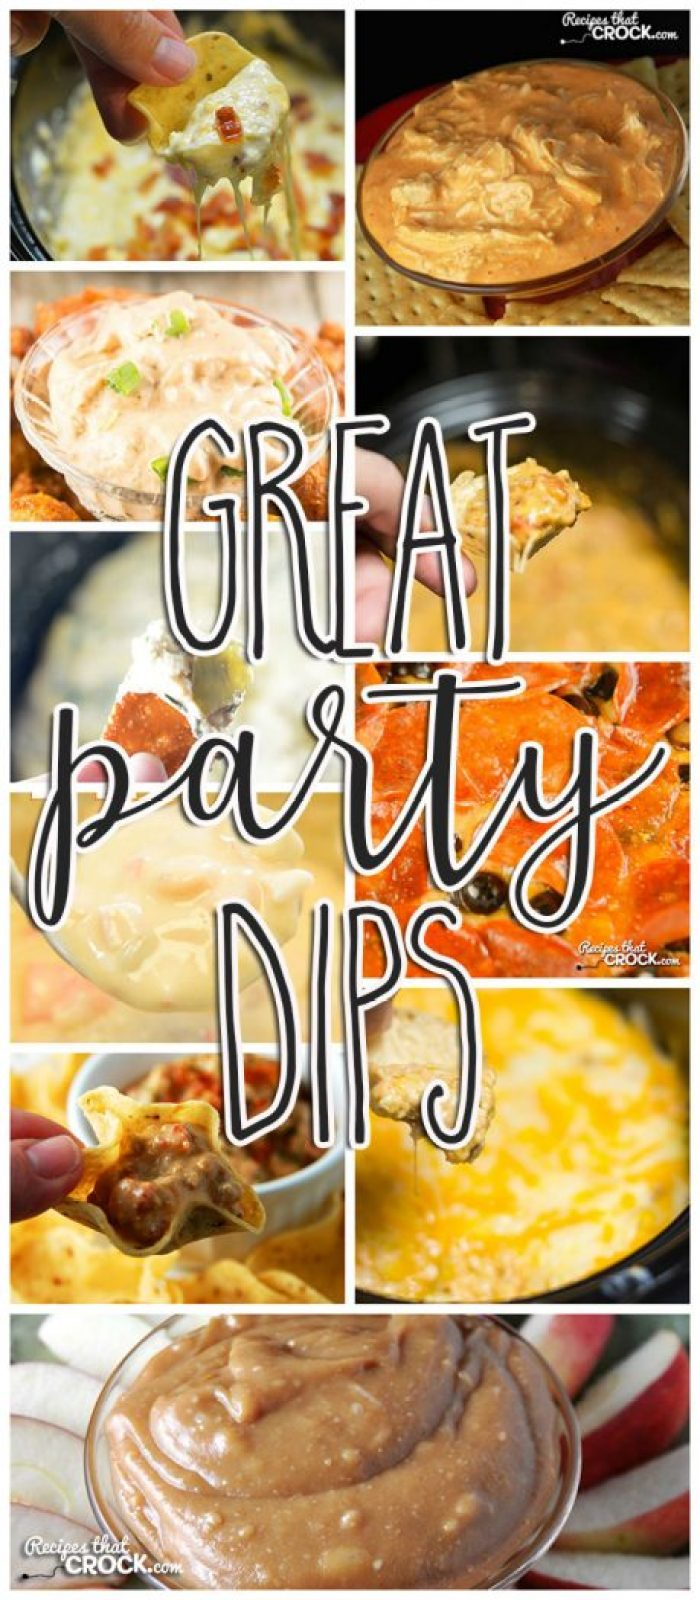 Potlucks, game day parties, pitch-ins, holidays...no matter what the occasion, these Great Party Dips are sure to be the life of any gathering!